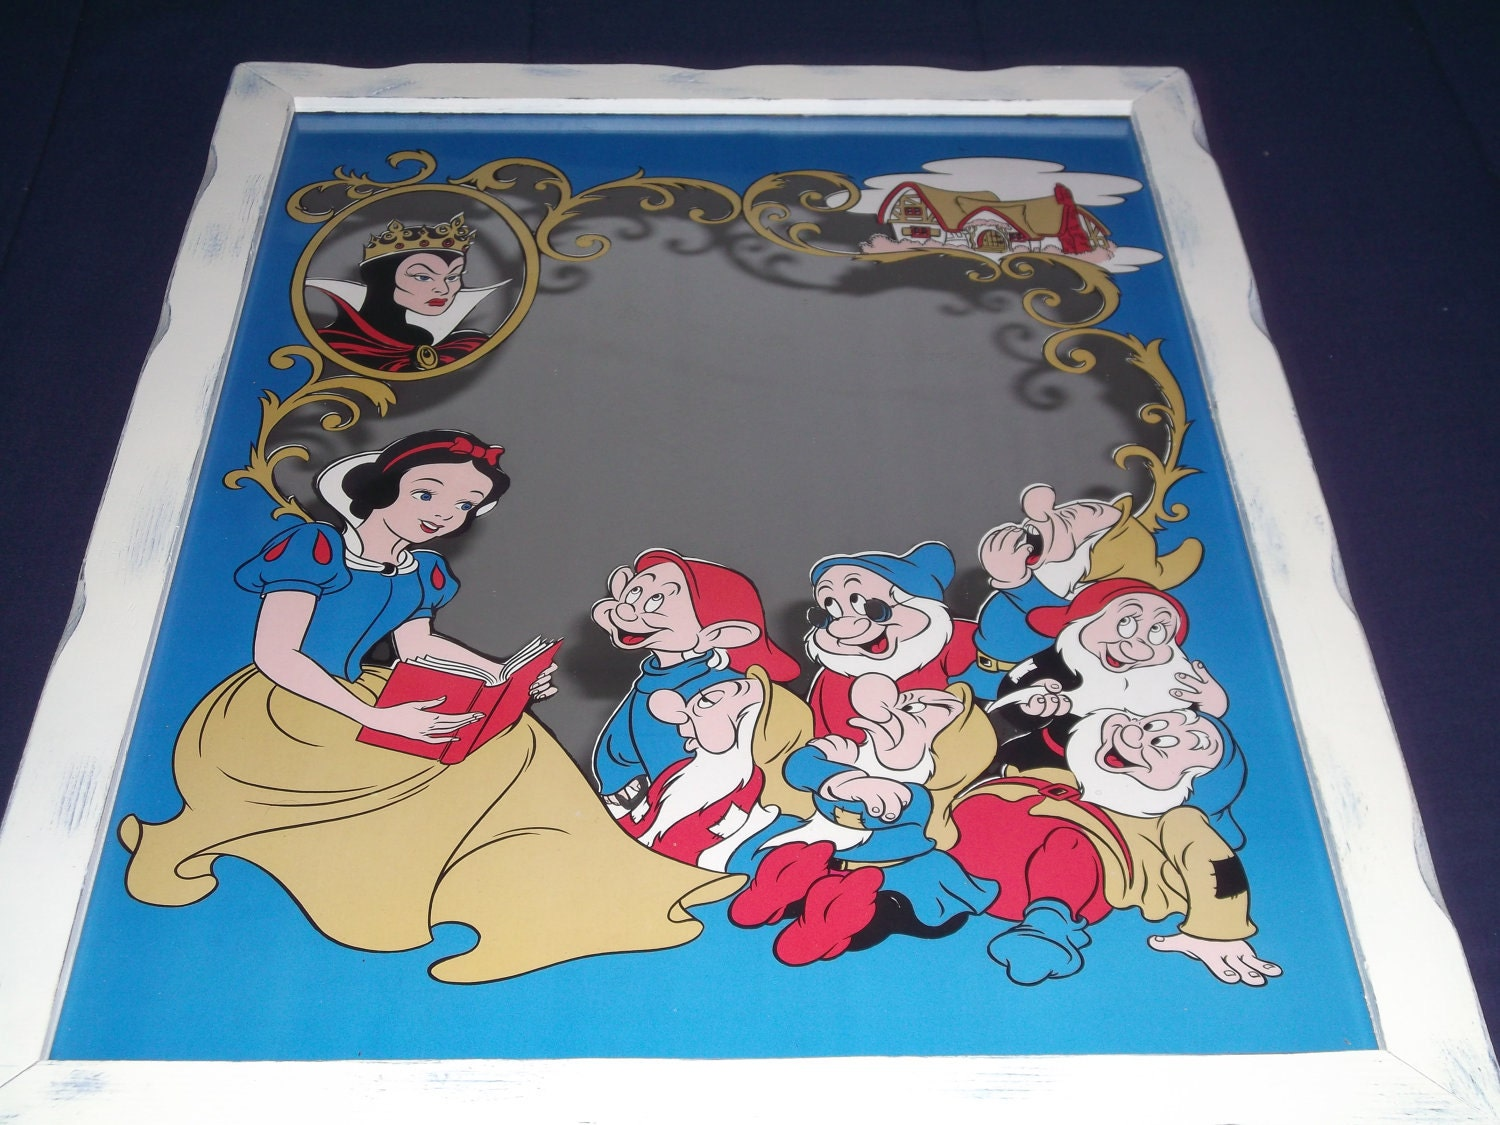 Vintage Silhouette Wall Mirror Large Snow White And The